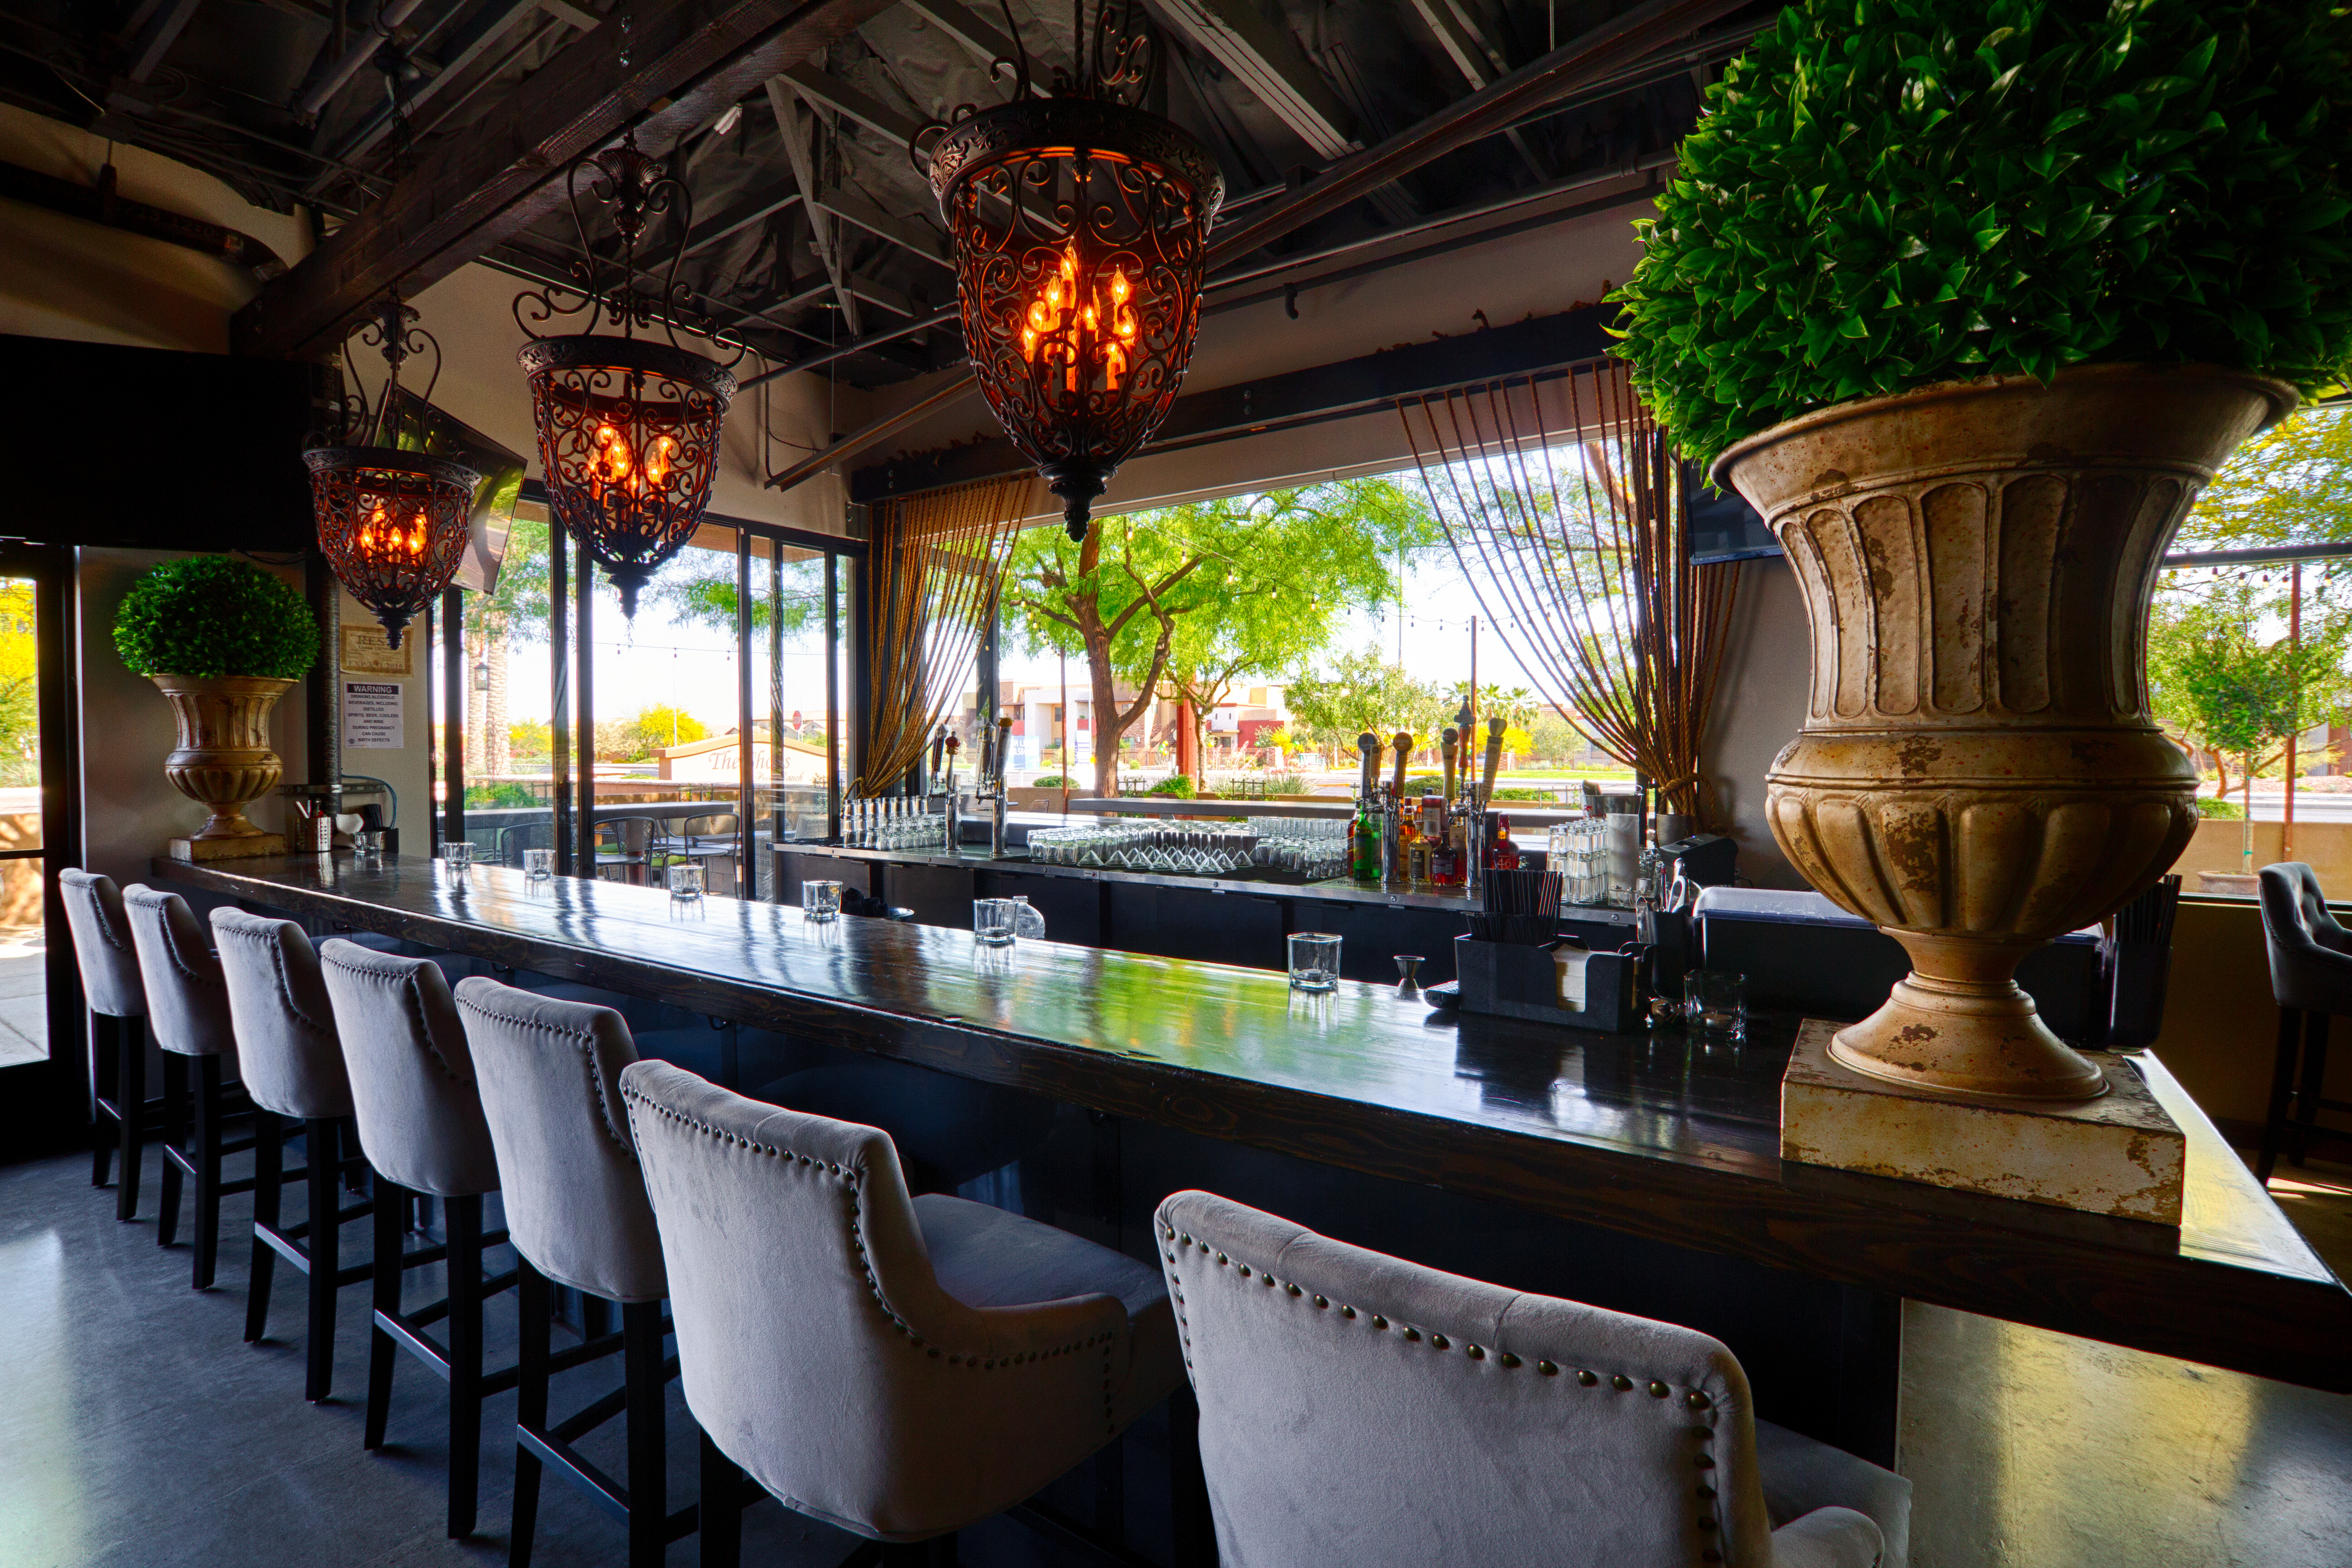 The Ivy Mediterranean Lounge Opens In Chandler Ariz May 2017 Business Wire